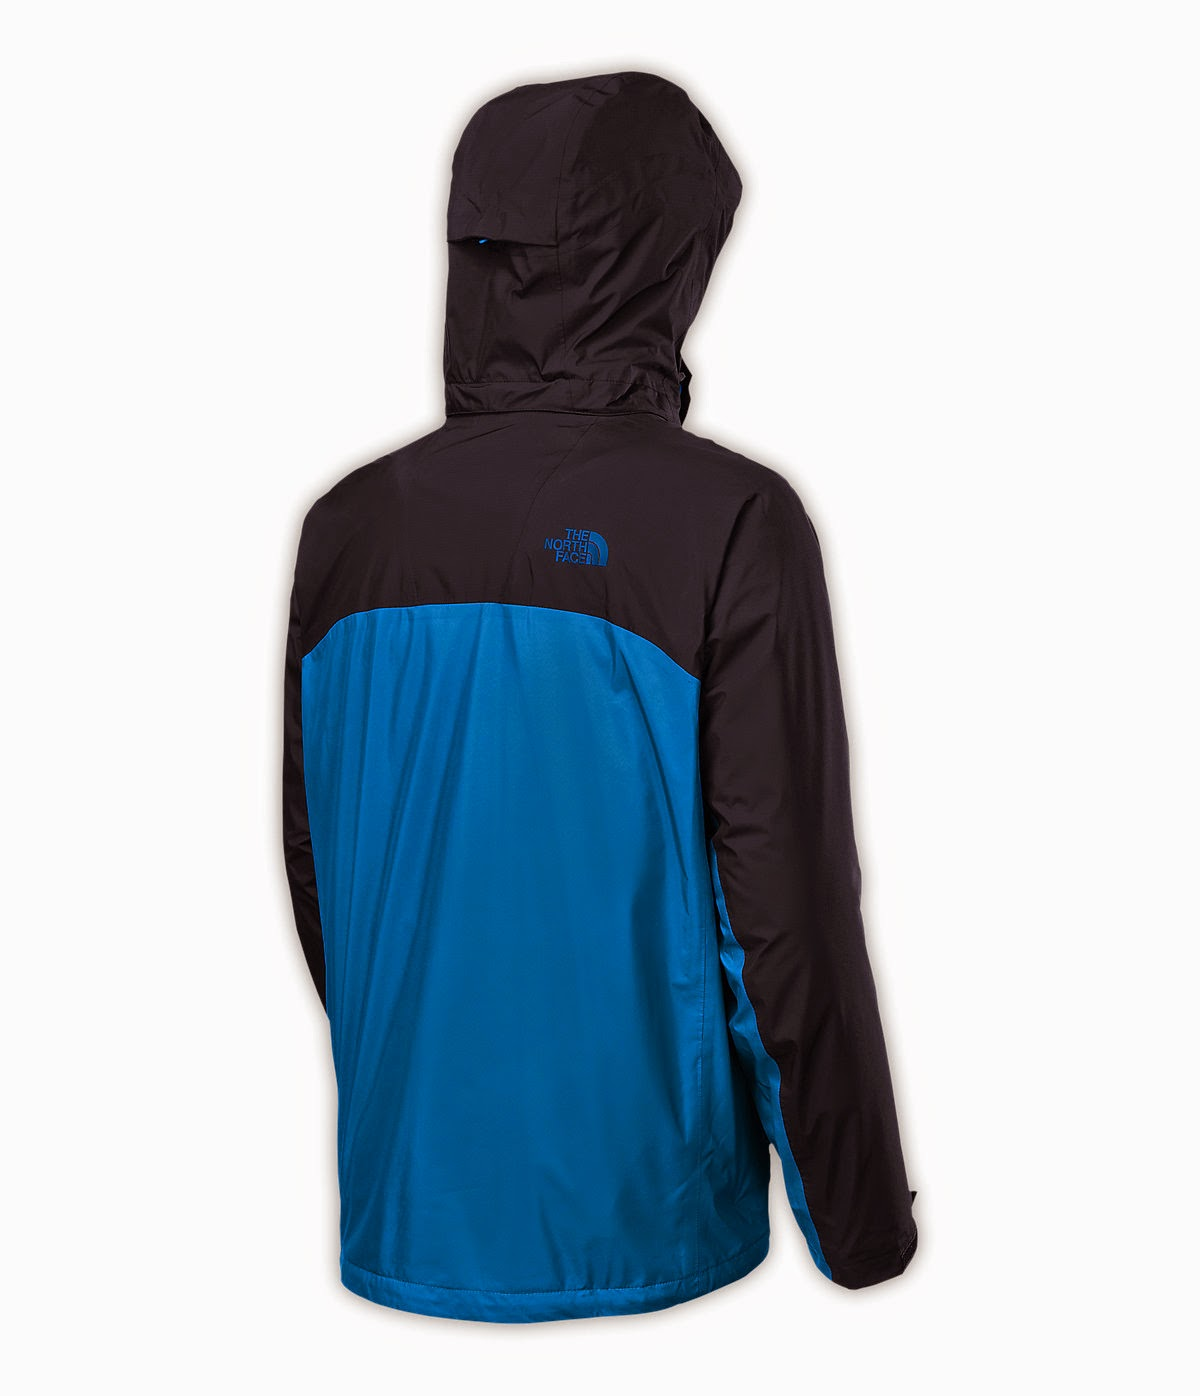 Jaket Gunung The North Face C944